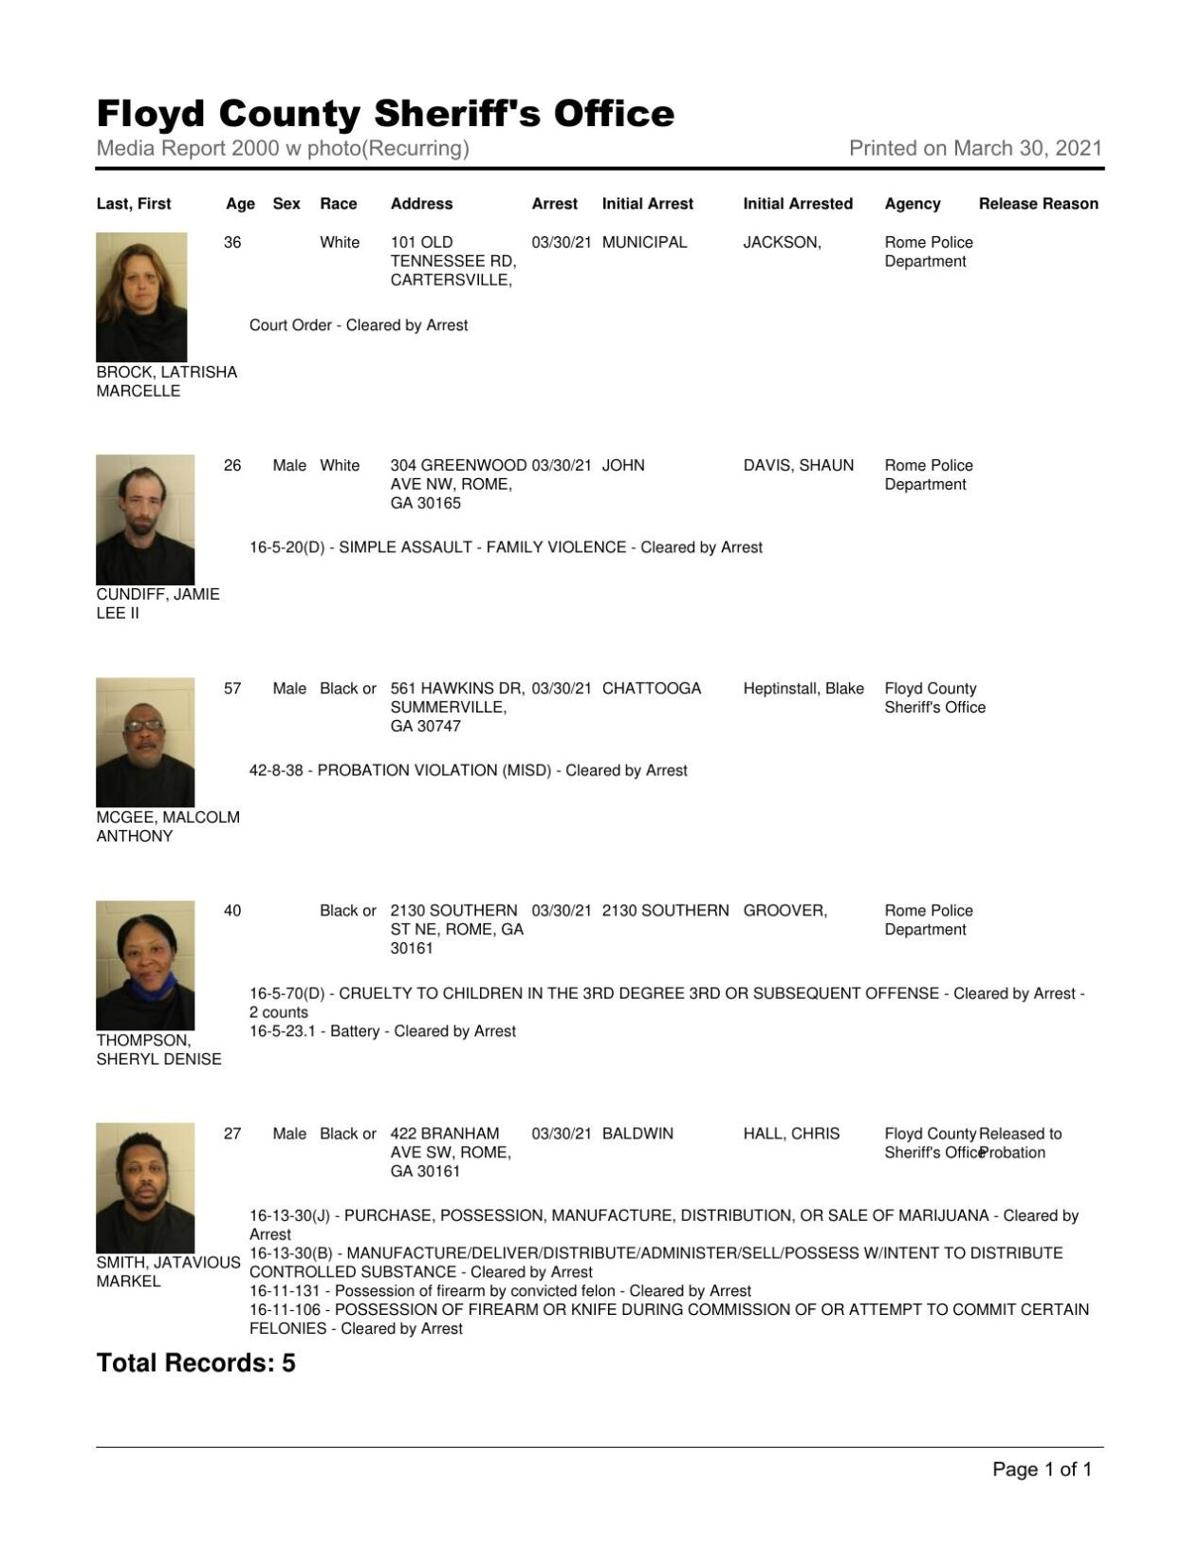 Floyd County Jail report for 8 pm Monday, March 30